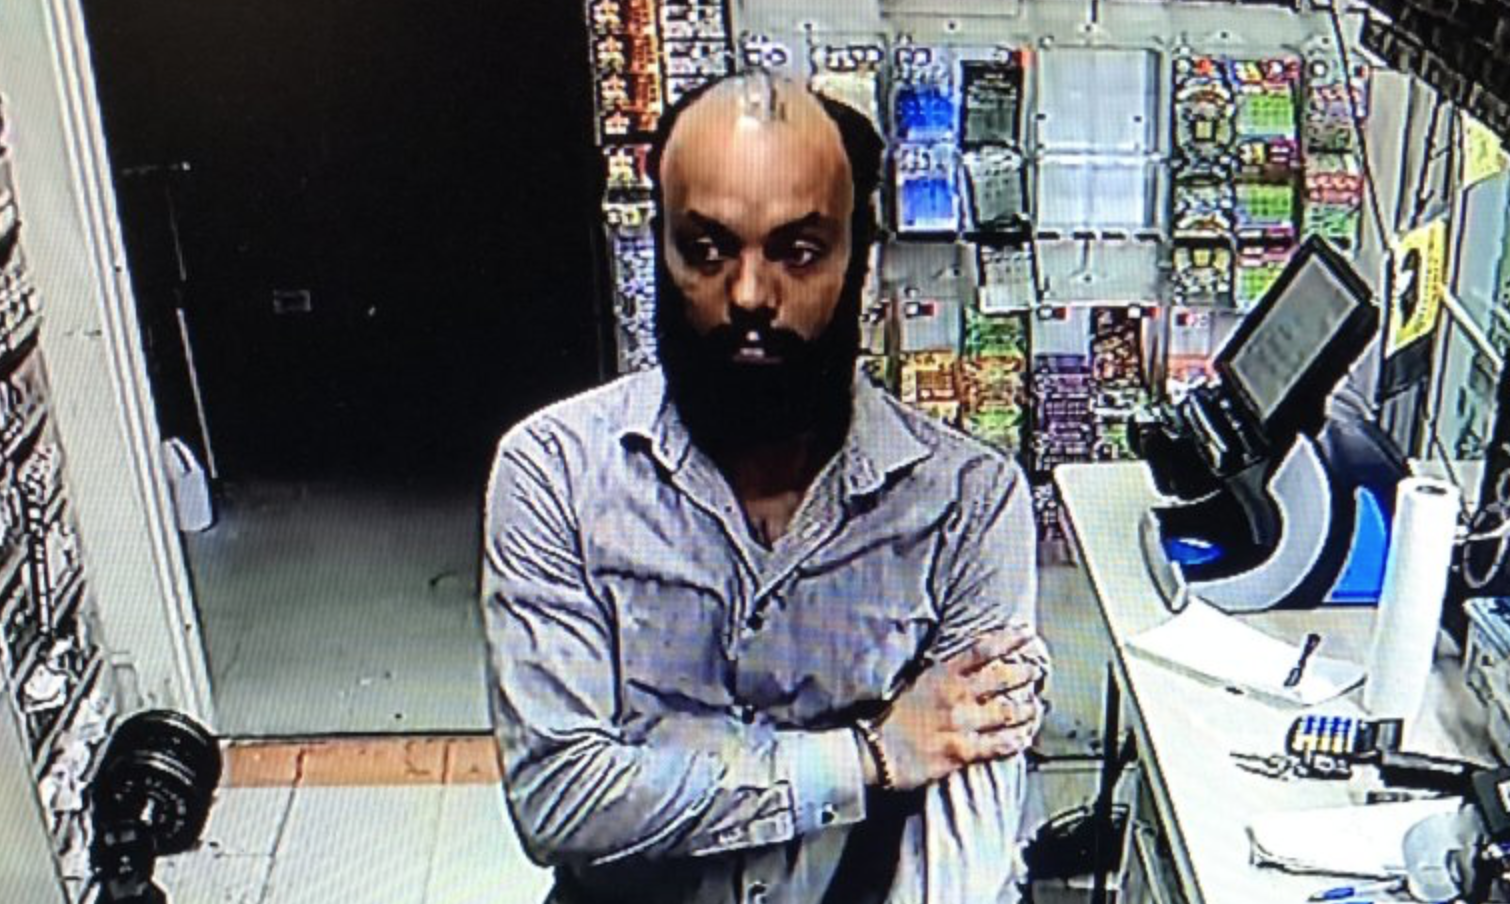 Store owner 'can't remember' name of employee who stole $17K from his business